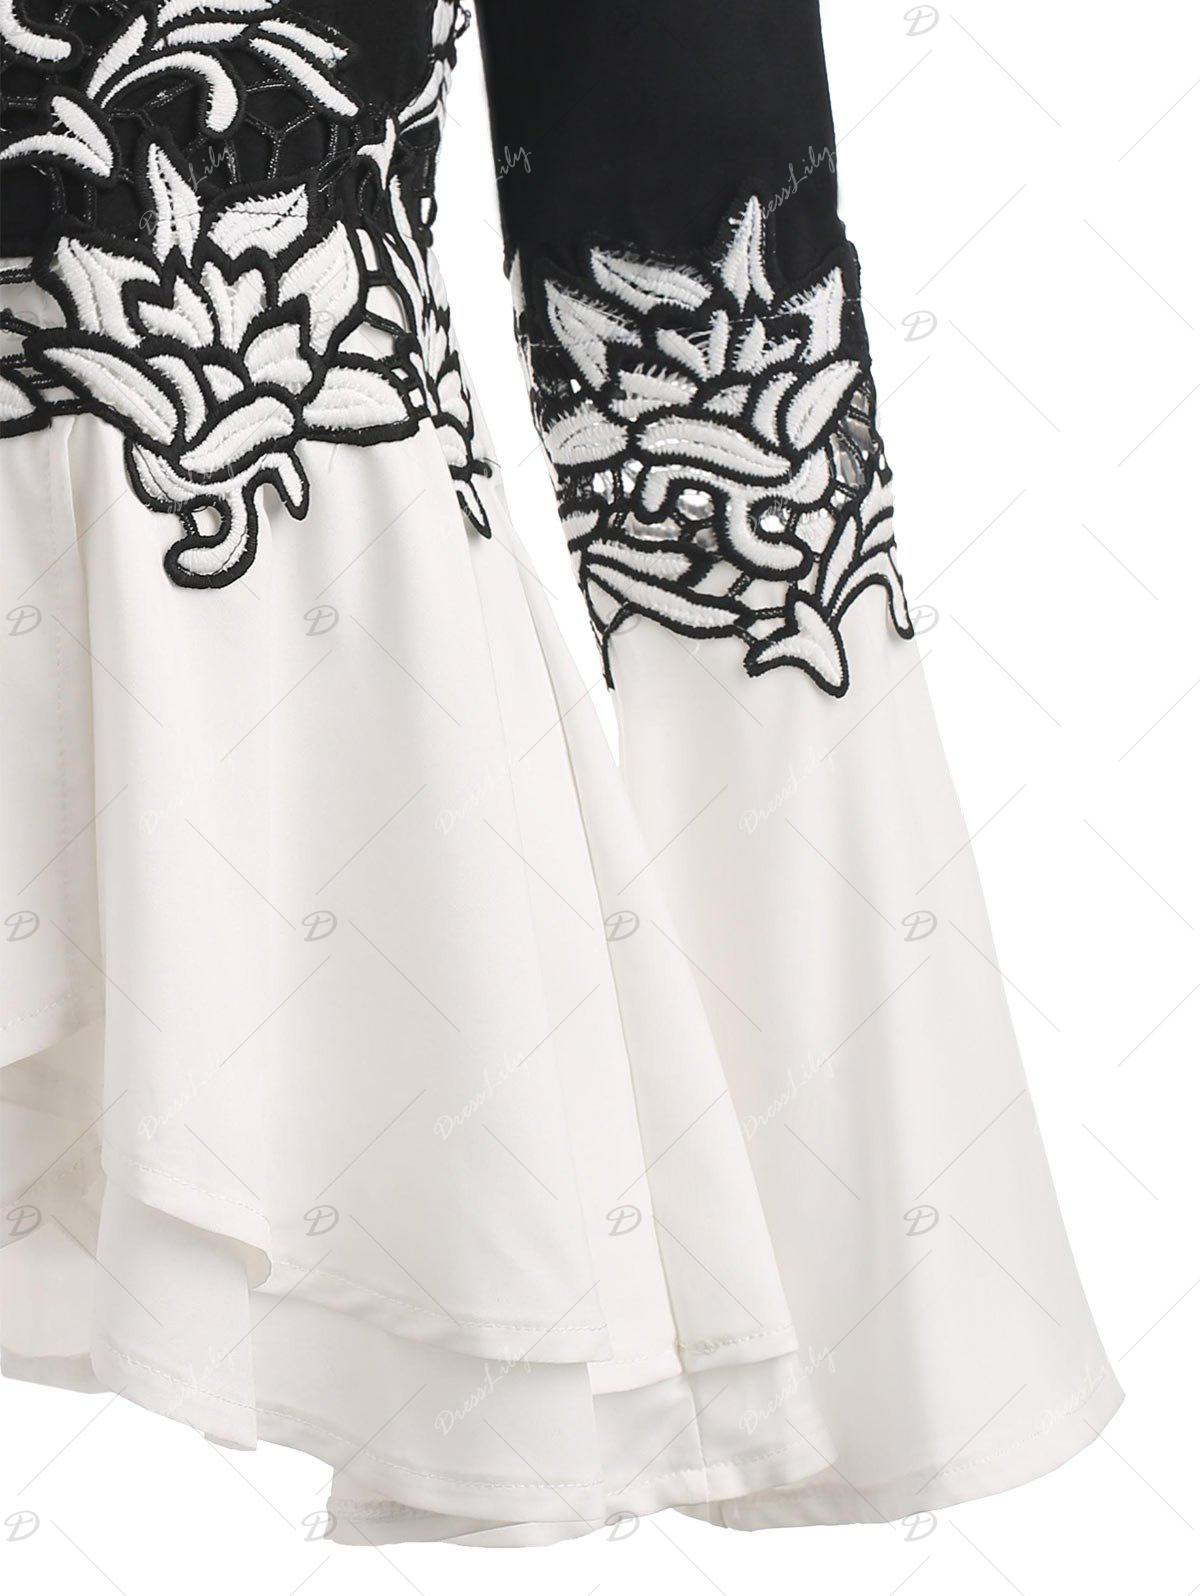 Bell Sleeve Embroidered Peplum T-shirt - WHITE/BLACK XL